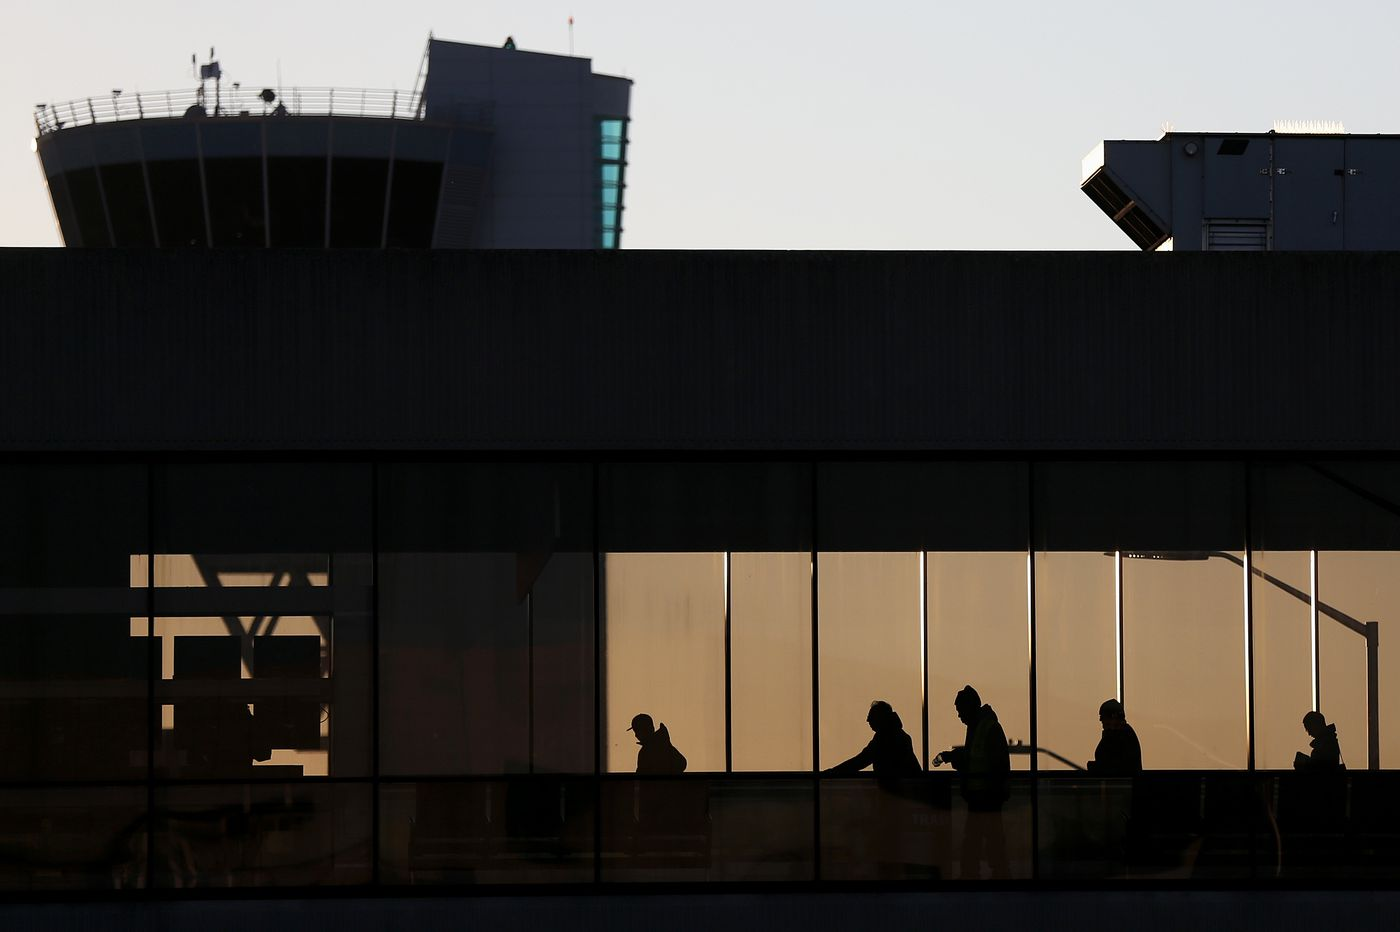 Customs computer outage leads to slowdown at Phila.'s airport, others across U.S.